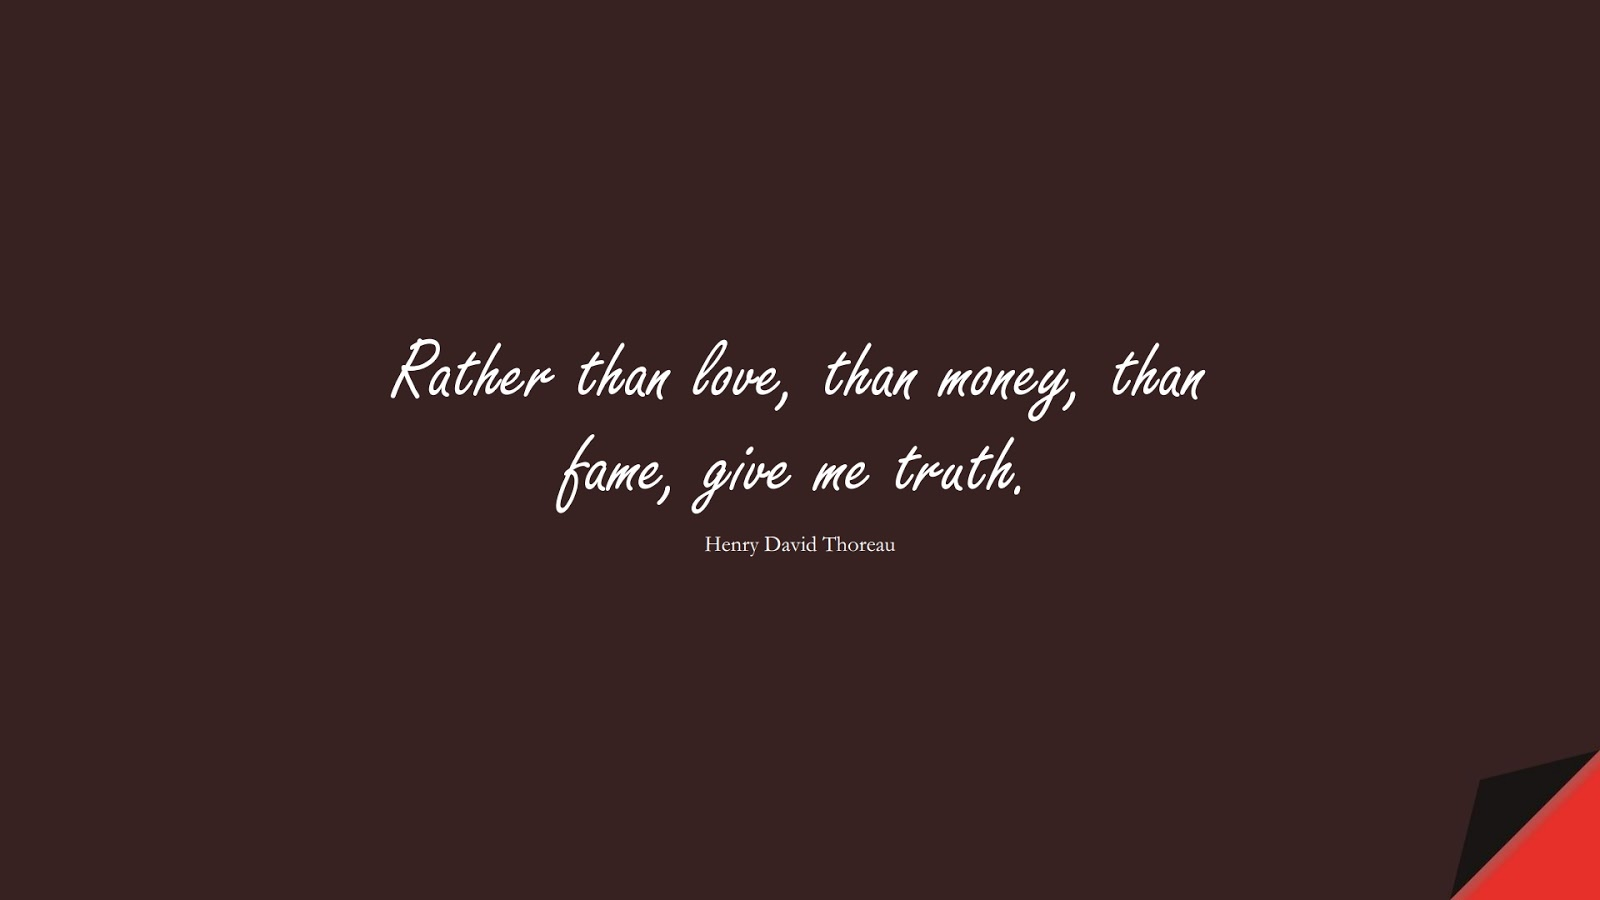 Rather than love, than money, than fame, give me truth. (Henry David Thoreau);  #MoneyQuotes